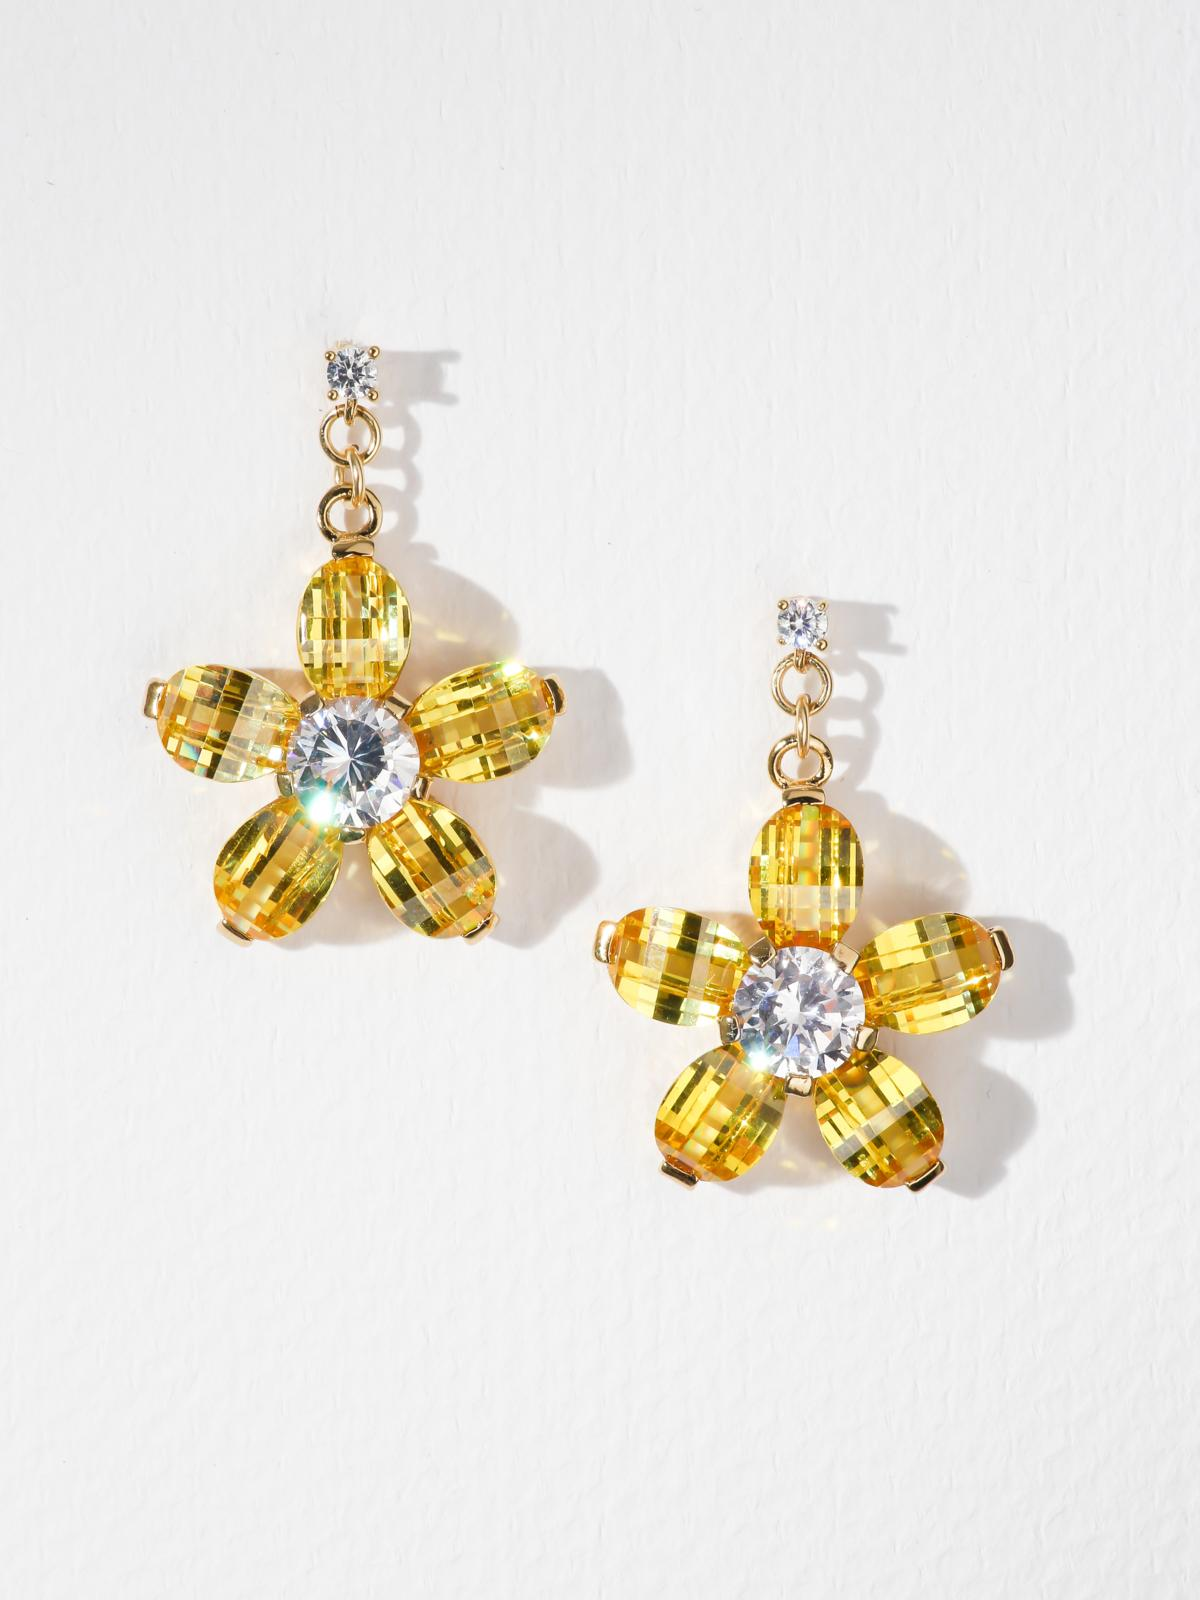 The Nubile Earrings